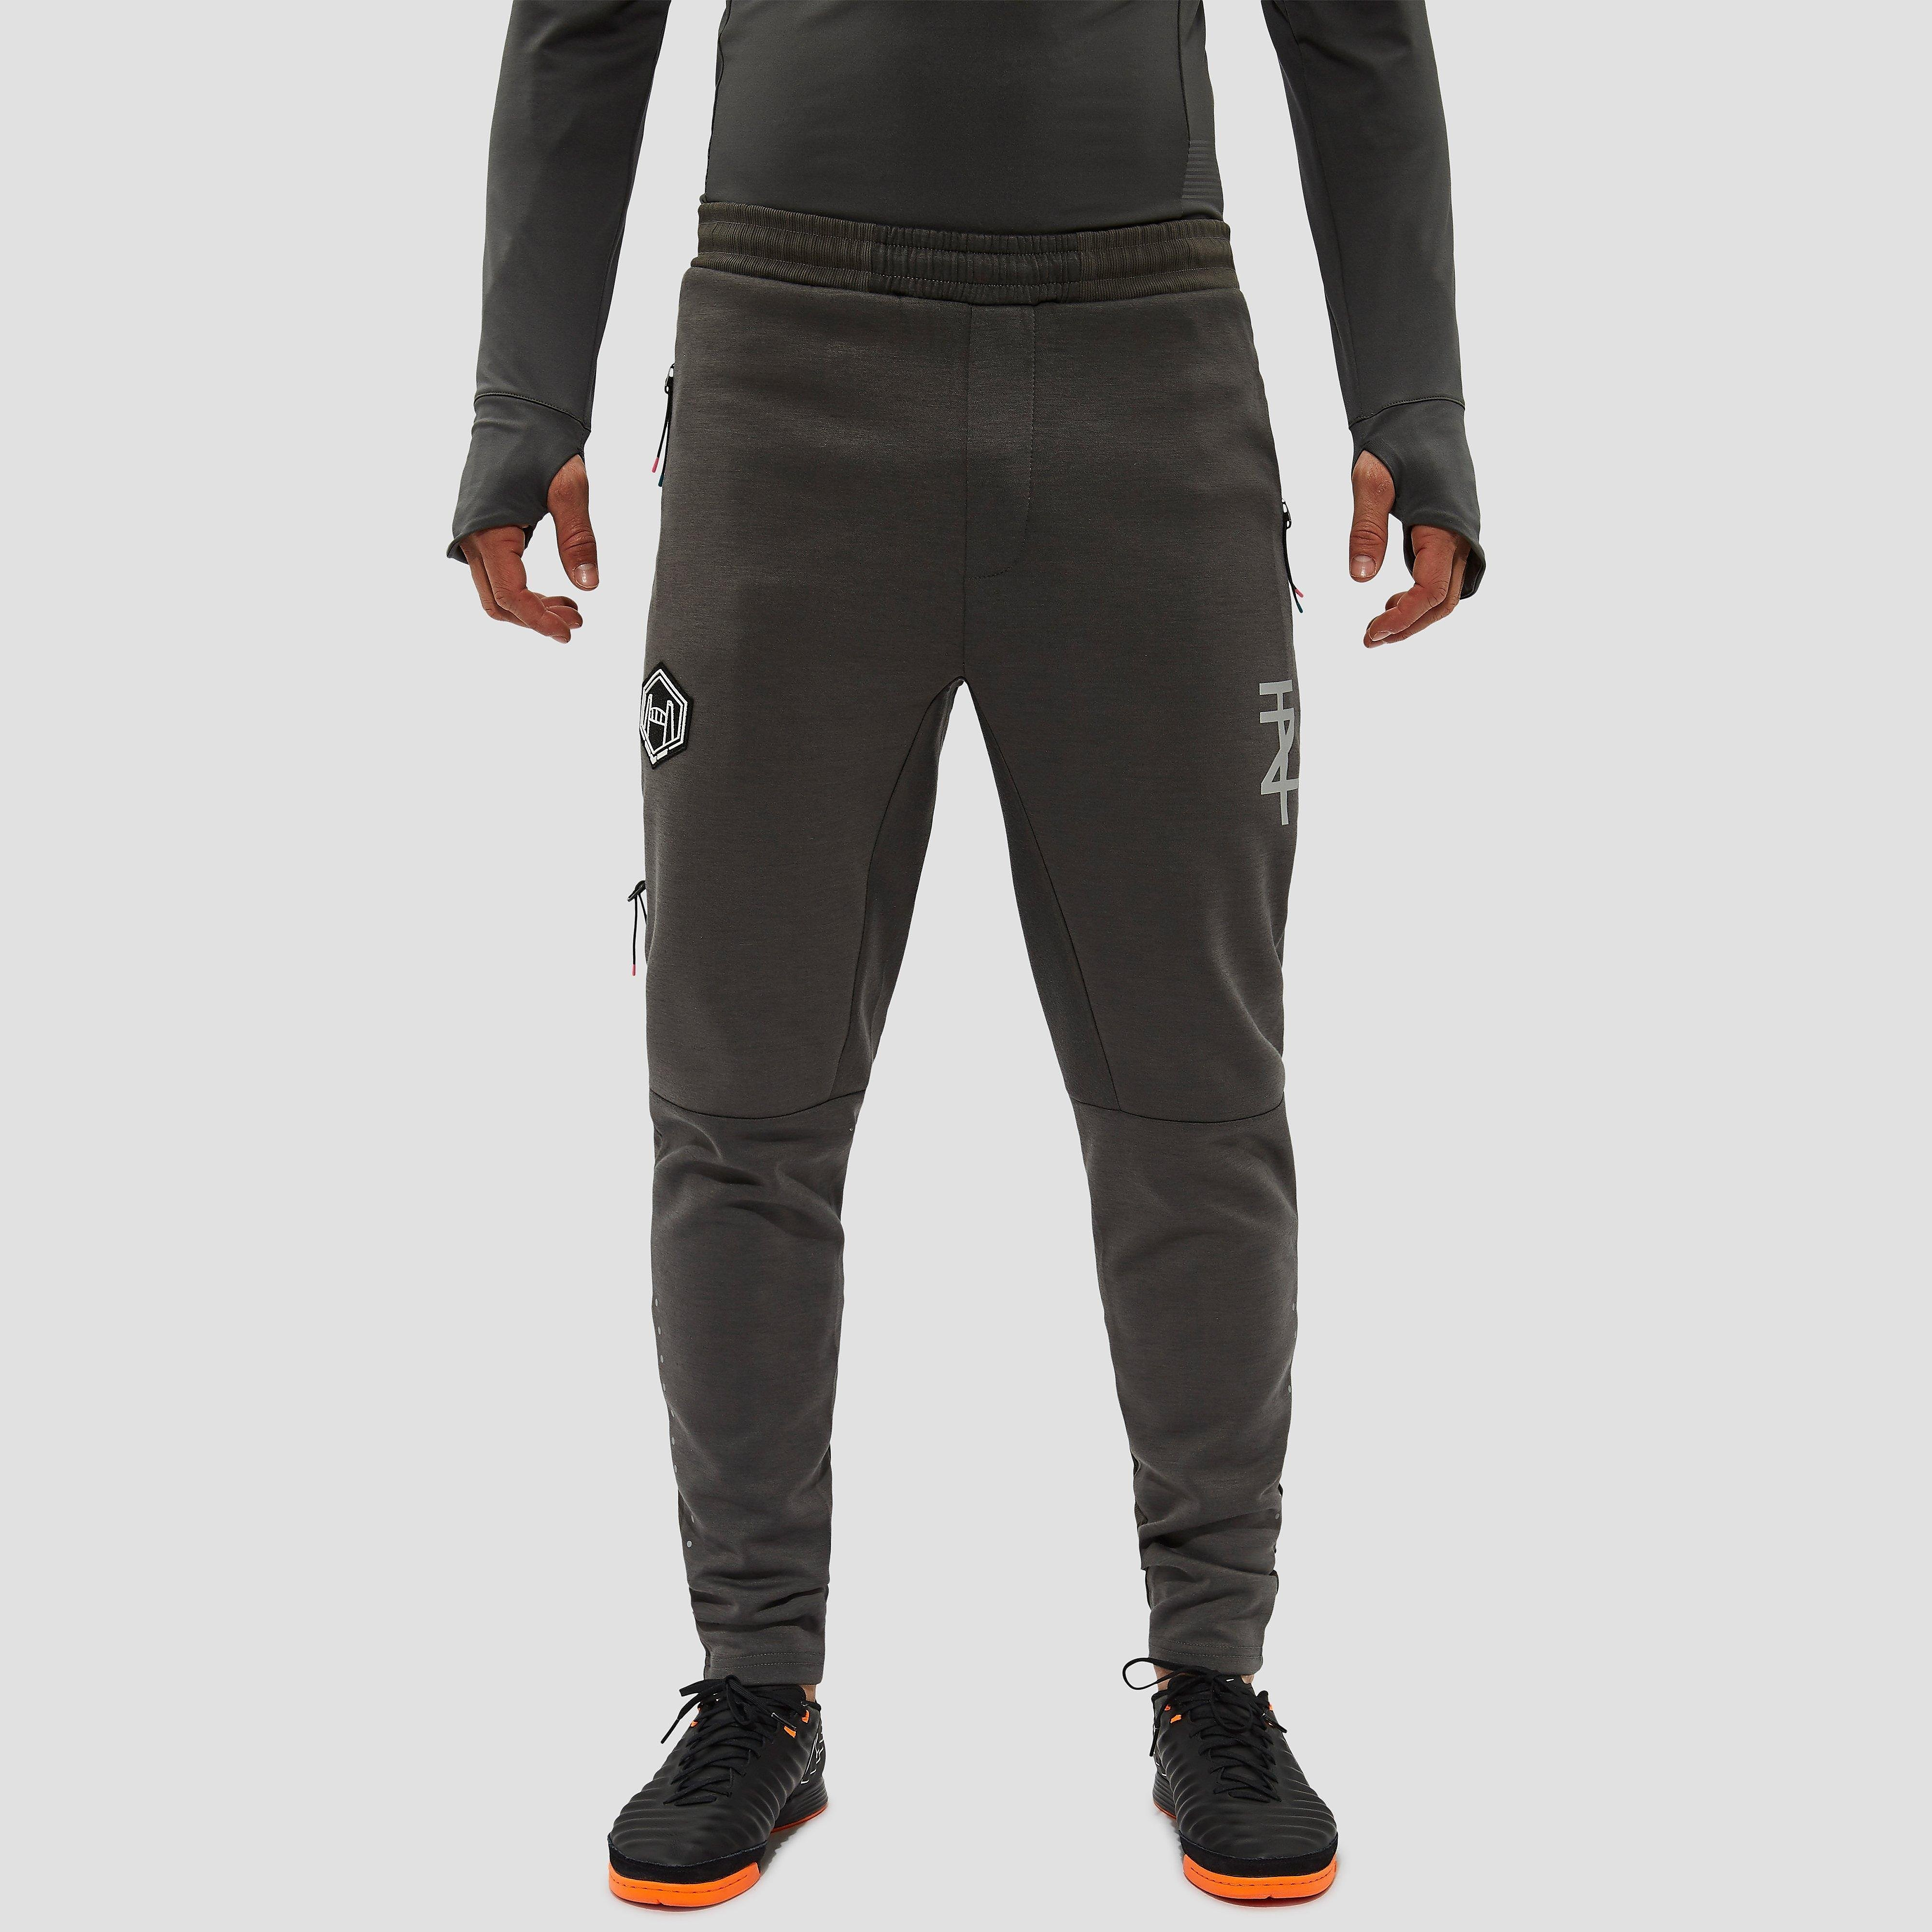 TOUZANI PRO-FLOW SLICK BOTTOM TRAININGSBROEK GRIJS HEREN